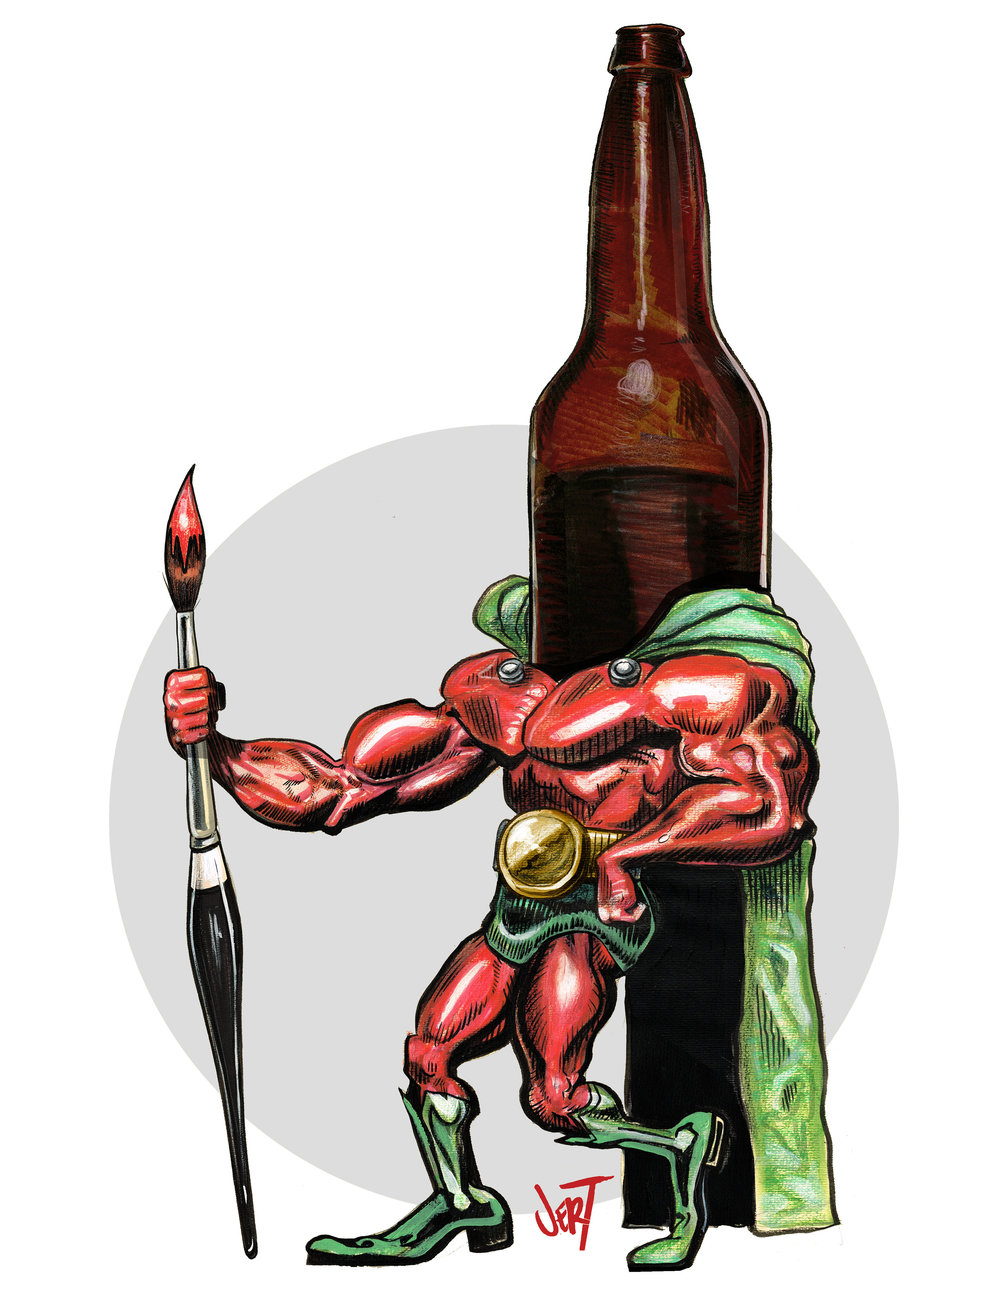 JERTPRINT-BEER-HERO 2.jpg